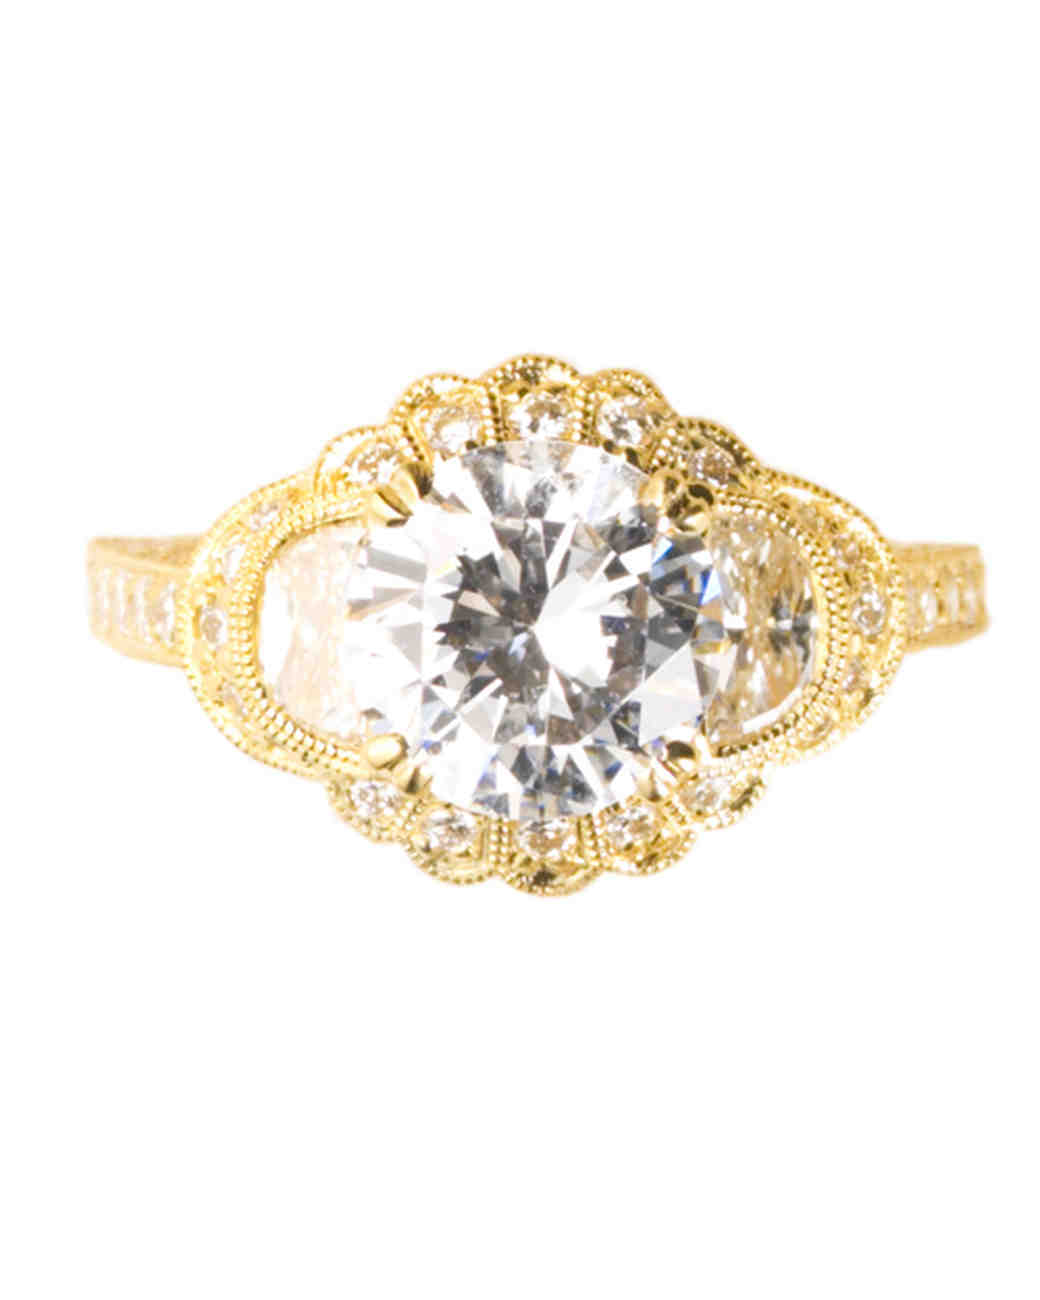 Yellow Gold Engagement Ring with Half-Moon Diamonds